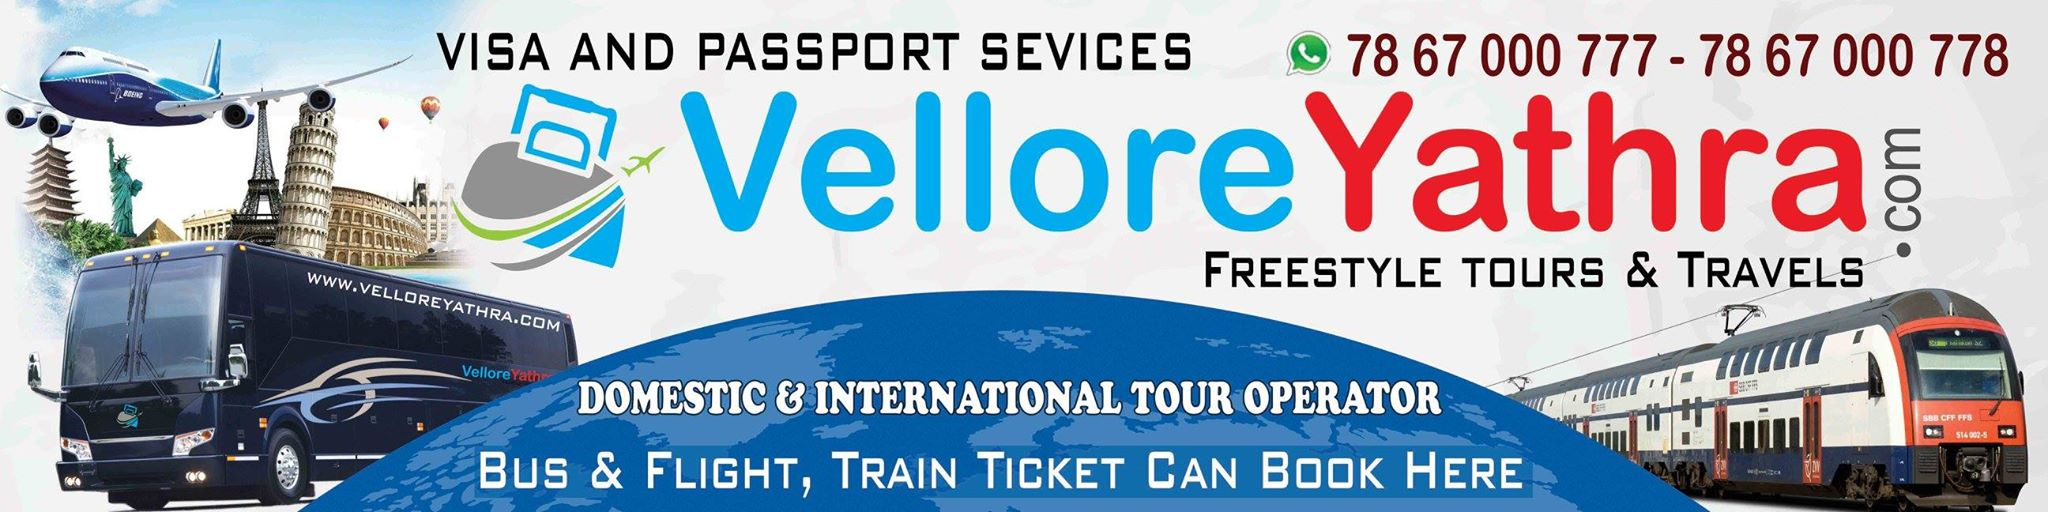 VELLORE YATHRA ,HEAD OFFICE:OPP NEW BUS STAND,BRANCH OFFICE:OPP VIT MAIN GATE,VIT